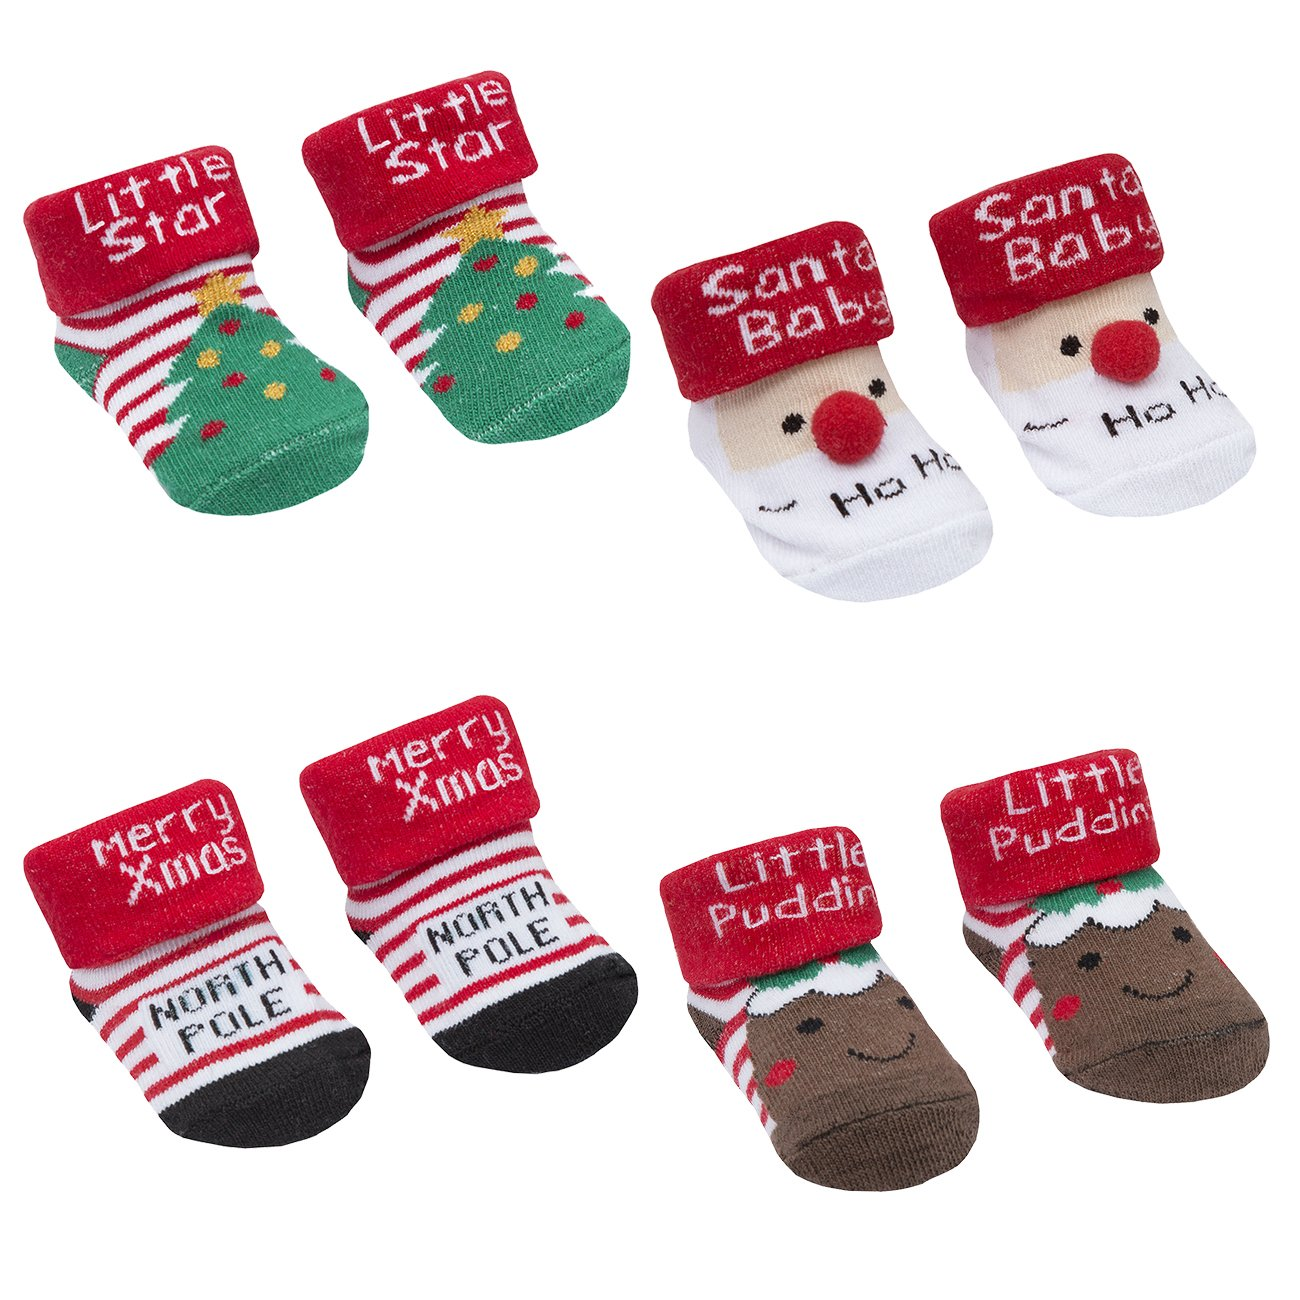 Newborn Baby Toddler Kids Infant Girl Boy Unisex Cute Three-Dimensional XMAS Socking Socks Slipper Shoes Boots 3D Bootie Socks 0-12 Month New Born